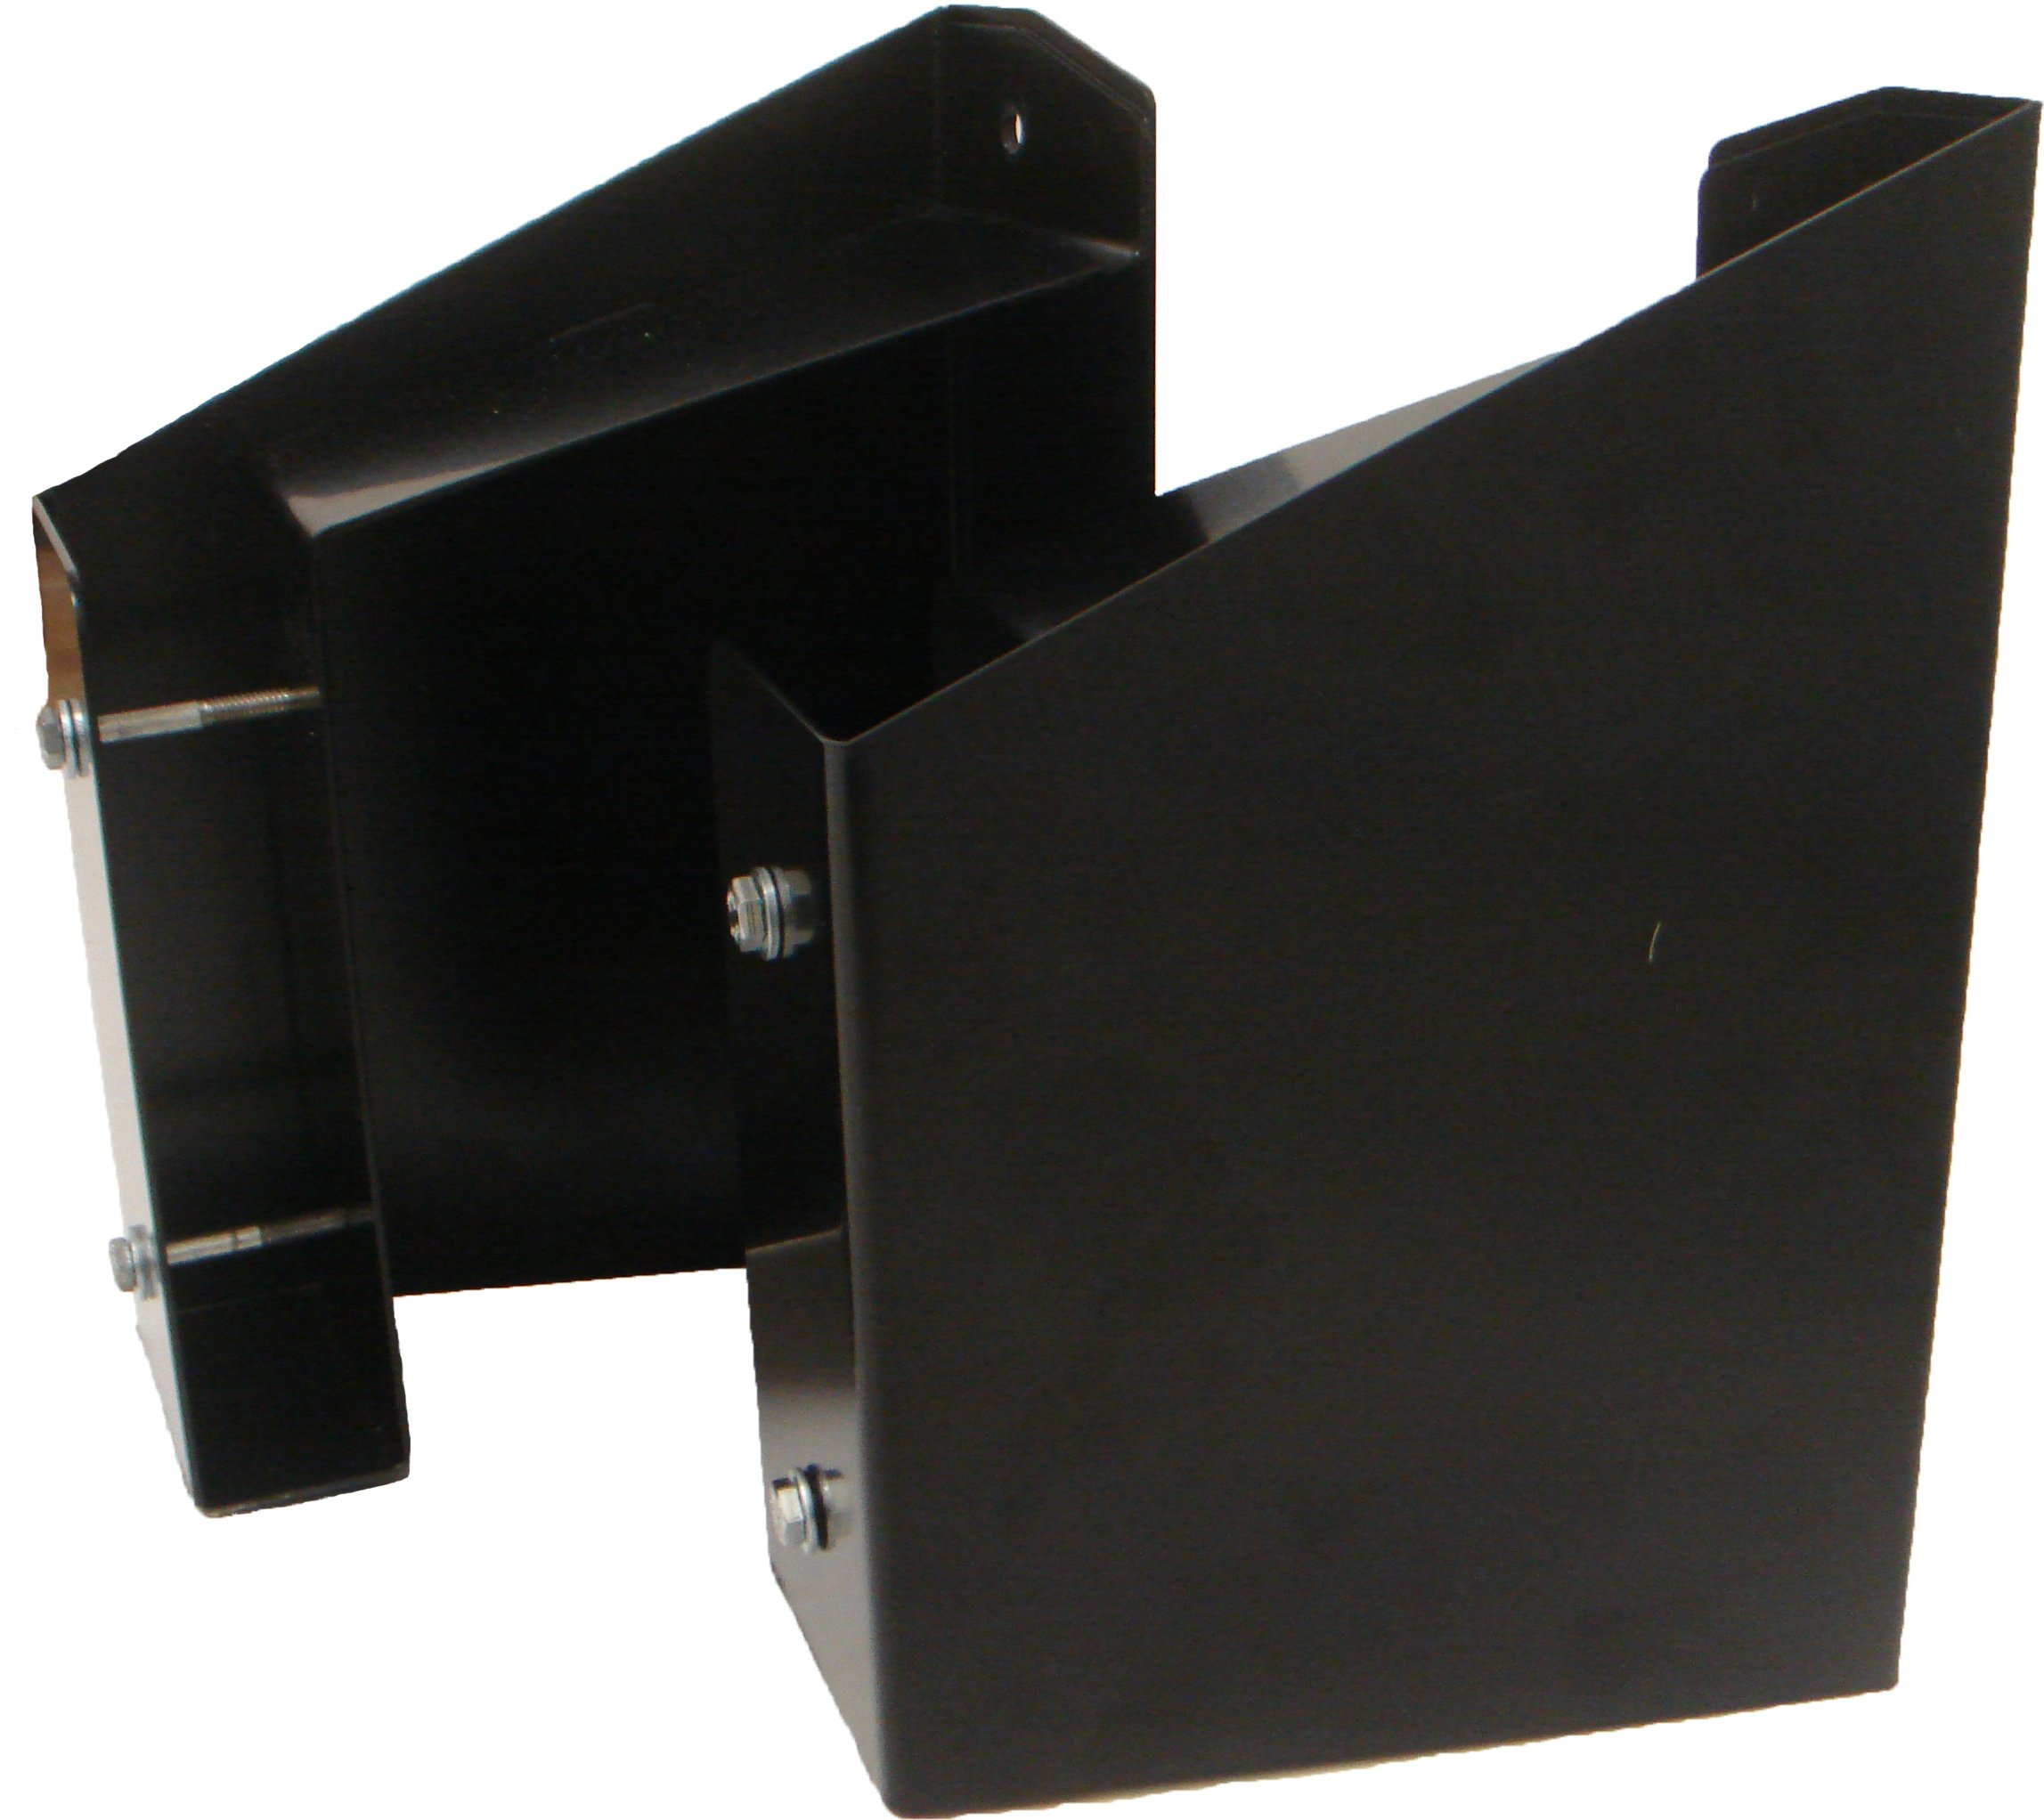 Outboard Motor Wall Storage Bracket, Compact Lightweight Storage Stand, Me-165